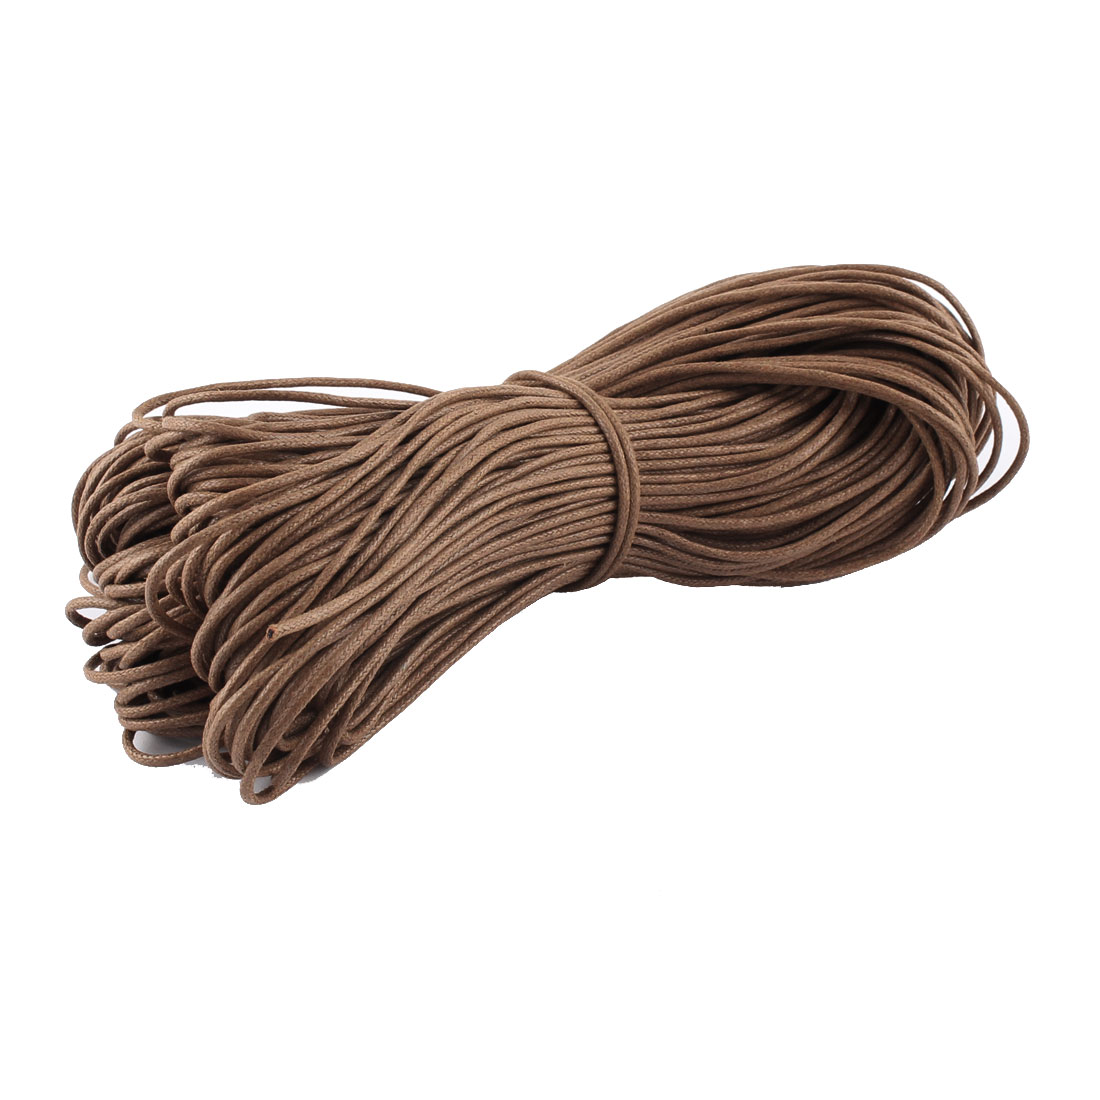 Bracelet Necklace Craft DIY Waxed Cotton String Beading Thread Cord Brown 2mm 87.5 Yard